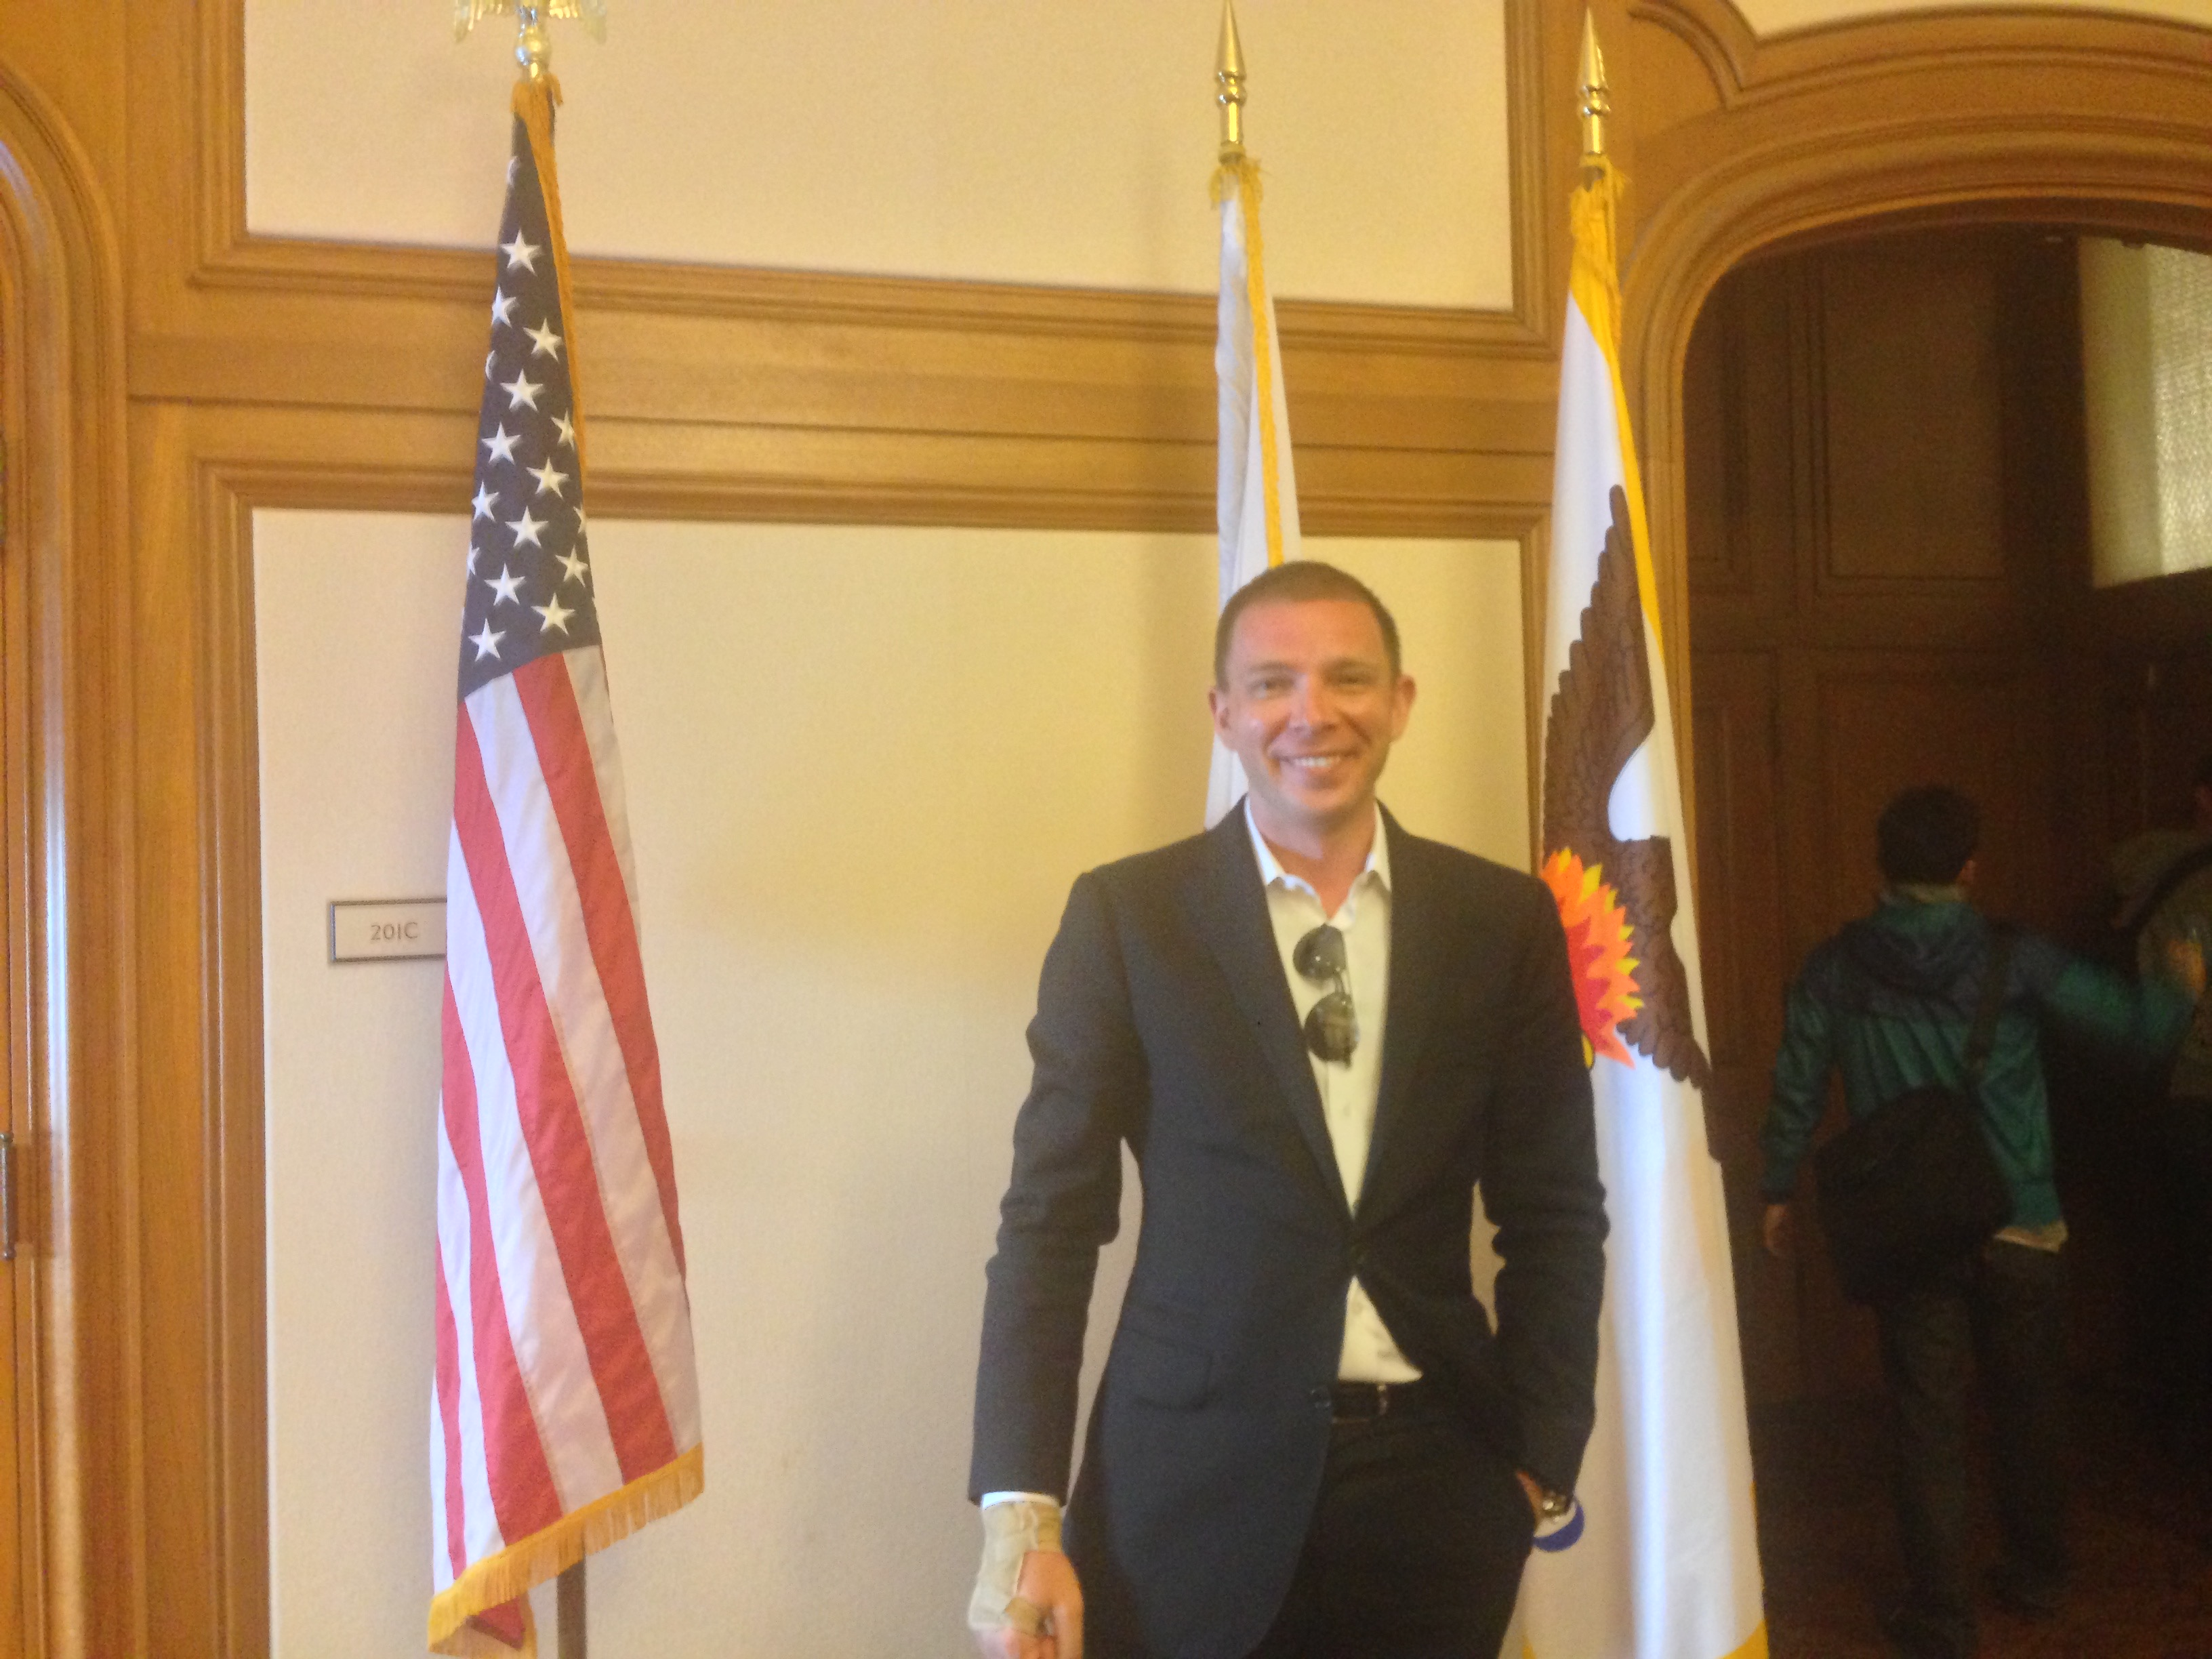 Dmitry Fedotov @ San Francisco Mayor's office